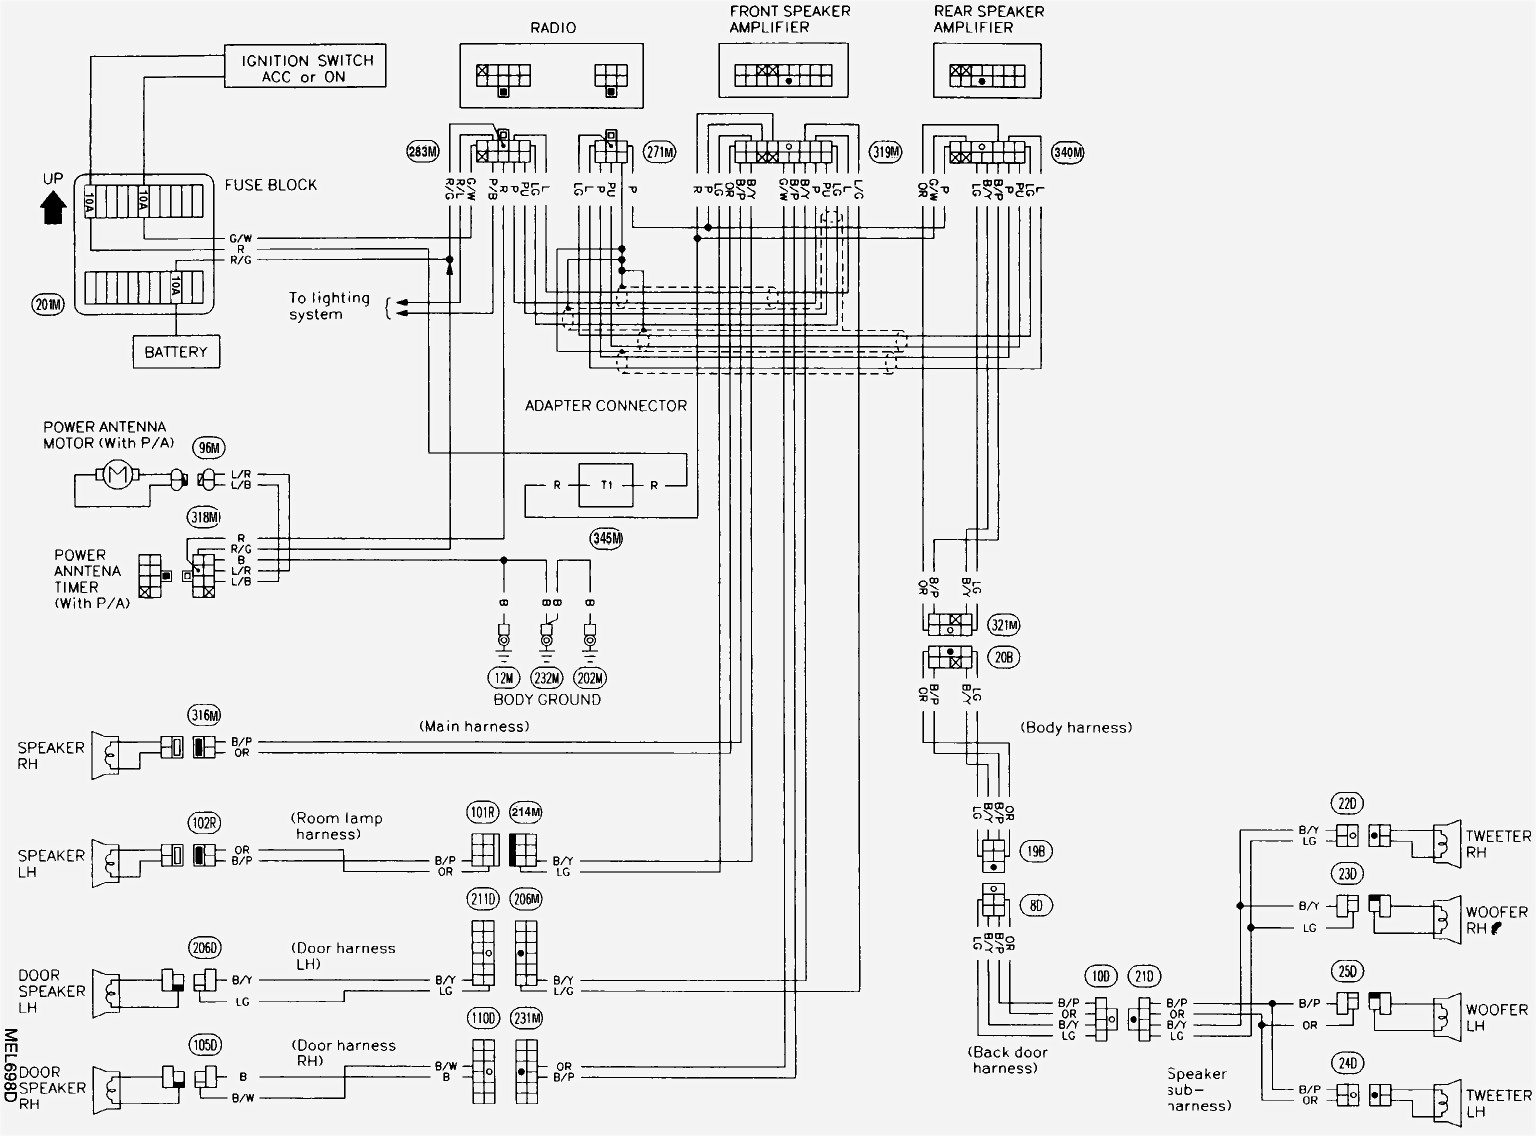 true freezer t 72f wiring diagram Collection-True T49f Wiring Diagram Download True Freezer T 49f Wiring Diagram Image 3 r 9-a